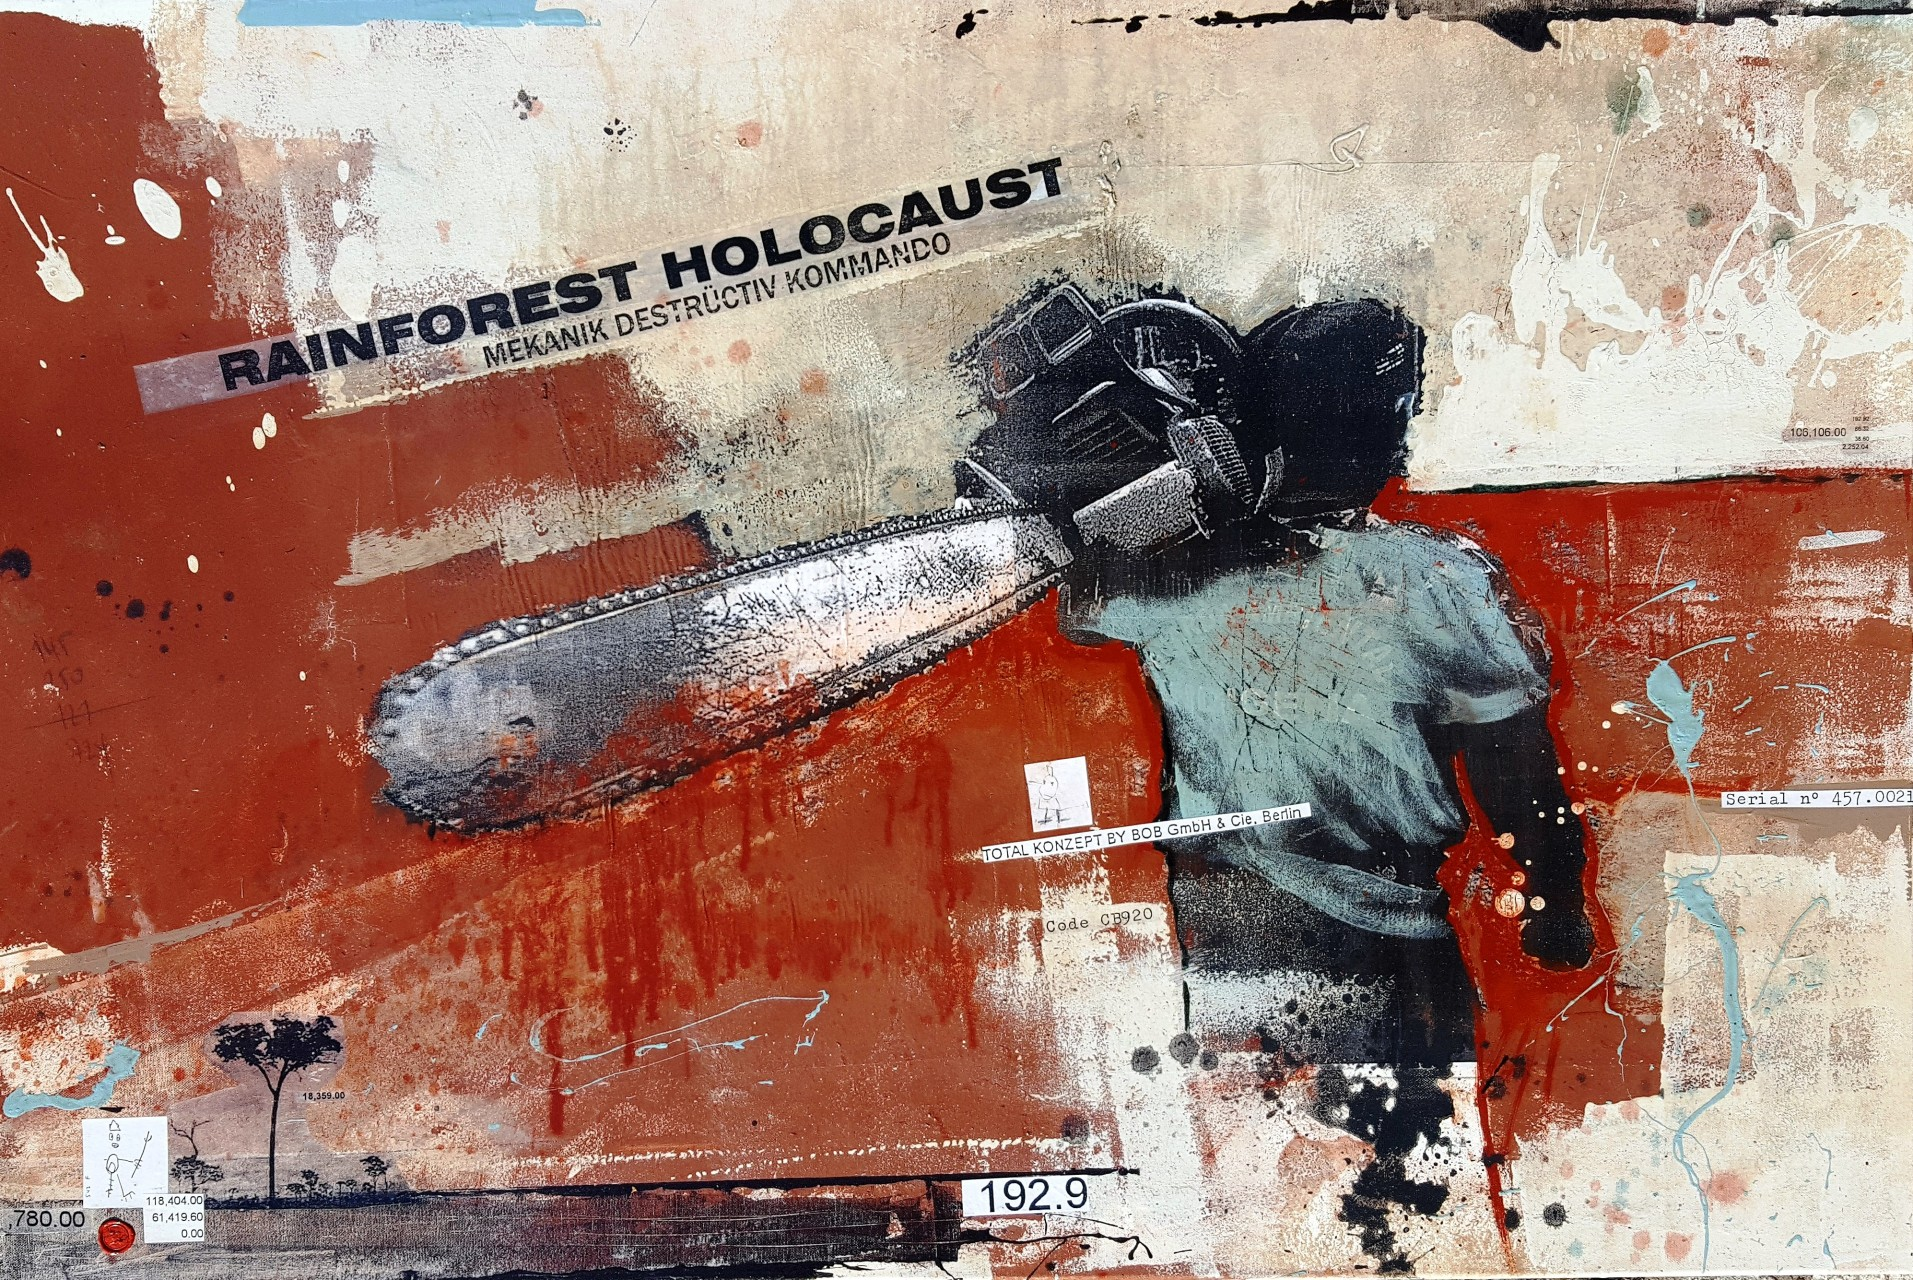 Rainforest Holocaust - collage photo, huile, acrylique sur toile 80 x 120 cm - 2016